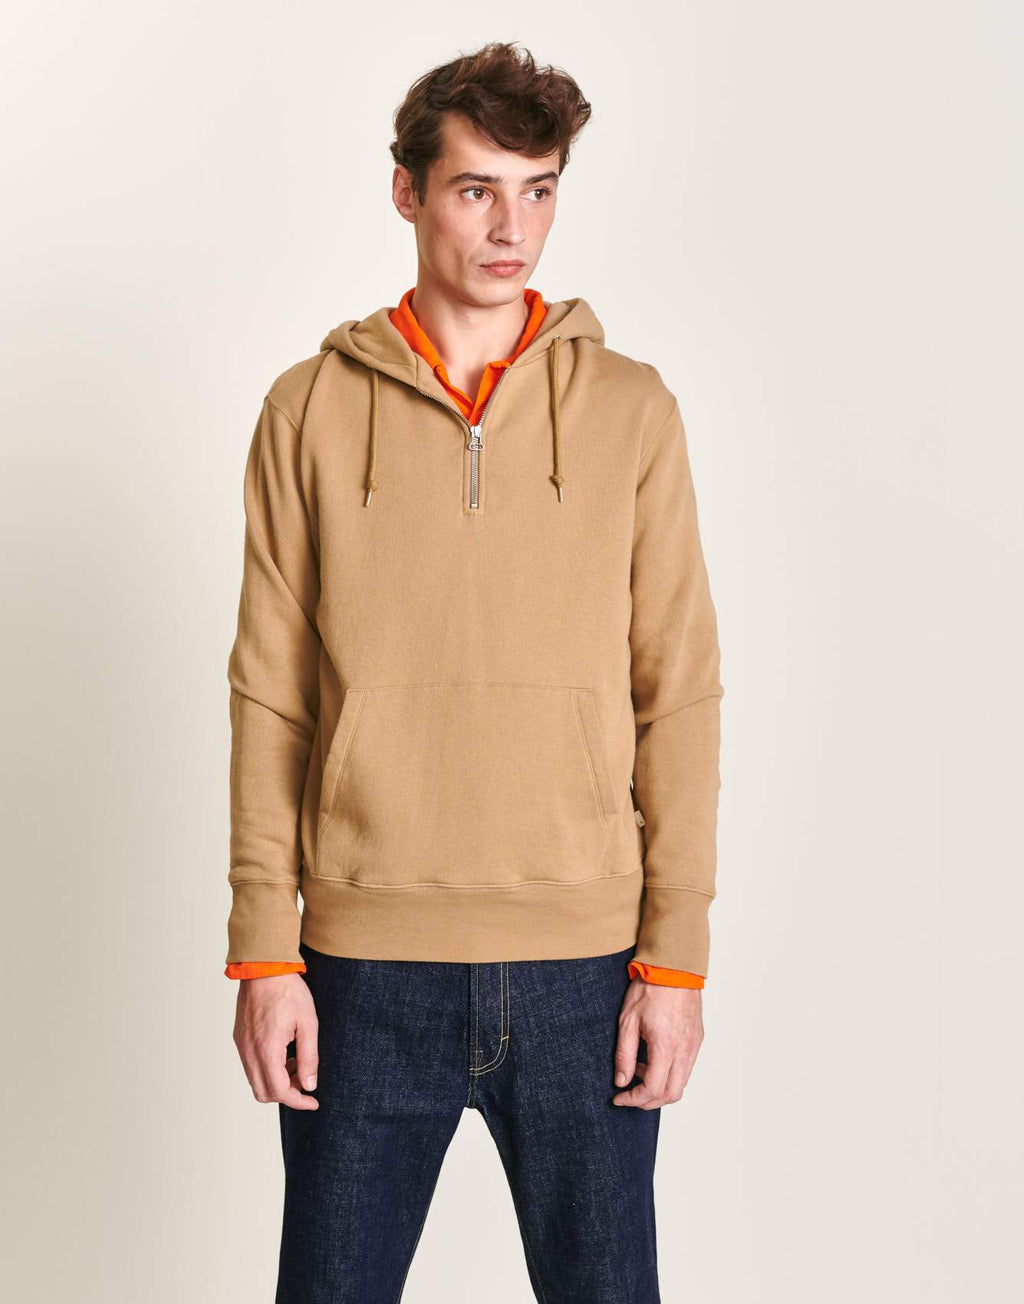 Bellerose Badux sweatshirt clay